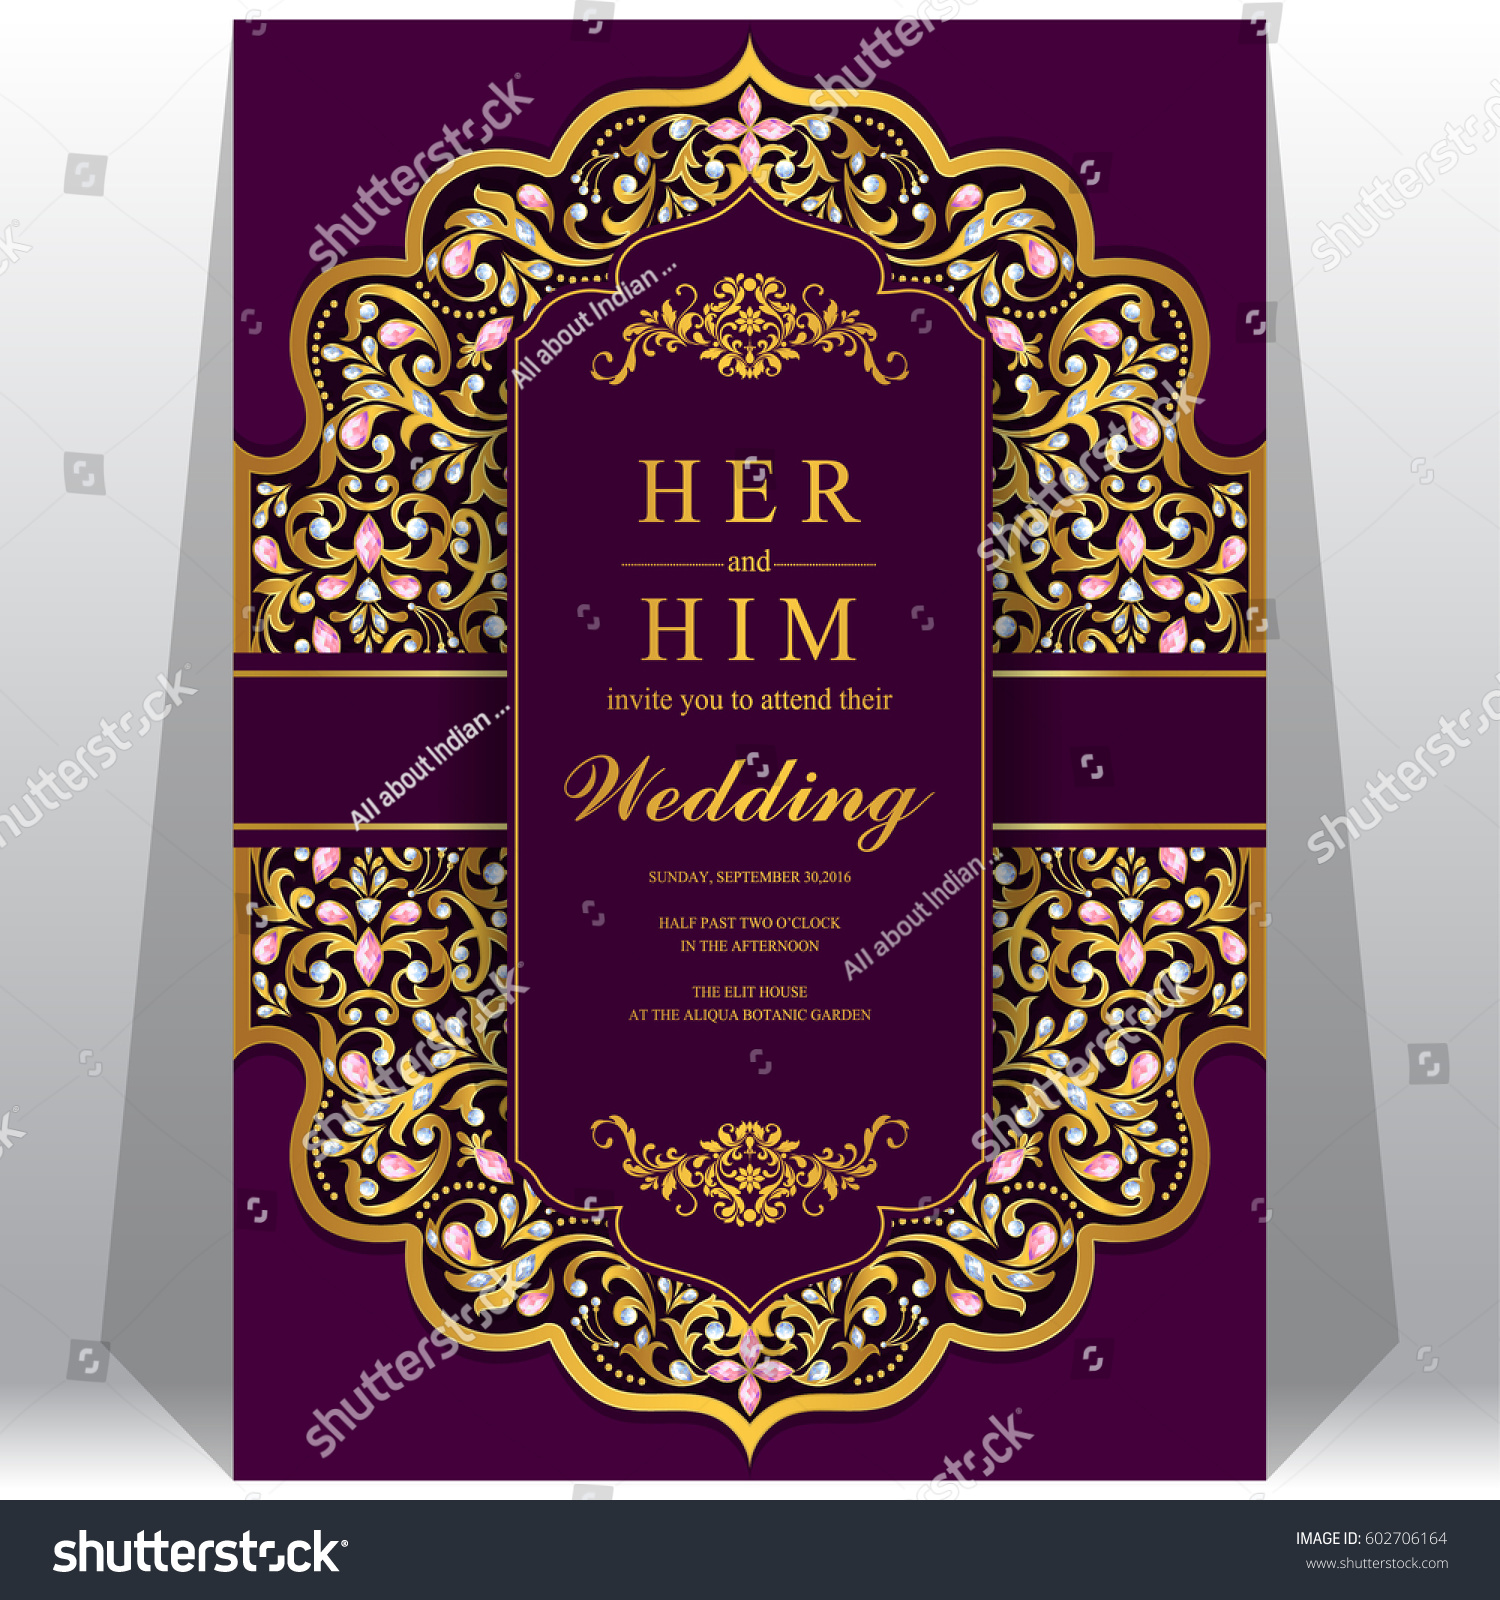 wedding invitation card templates gold patterned stock vector